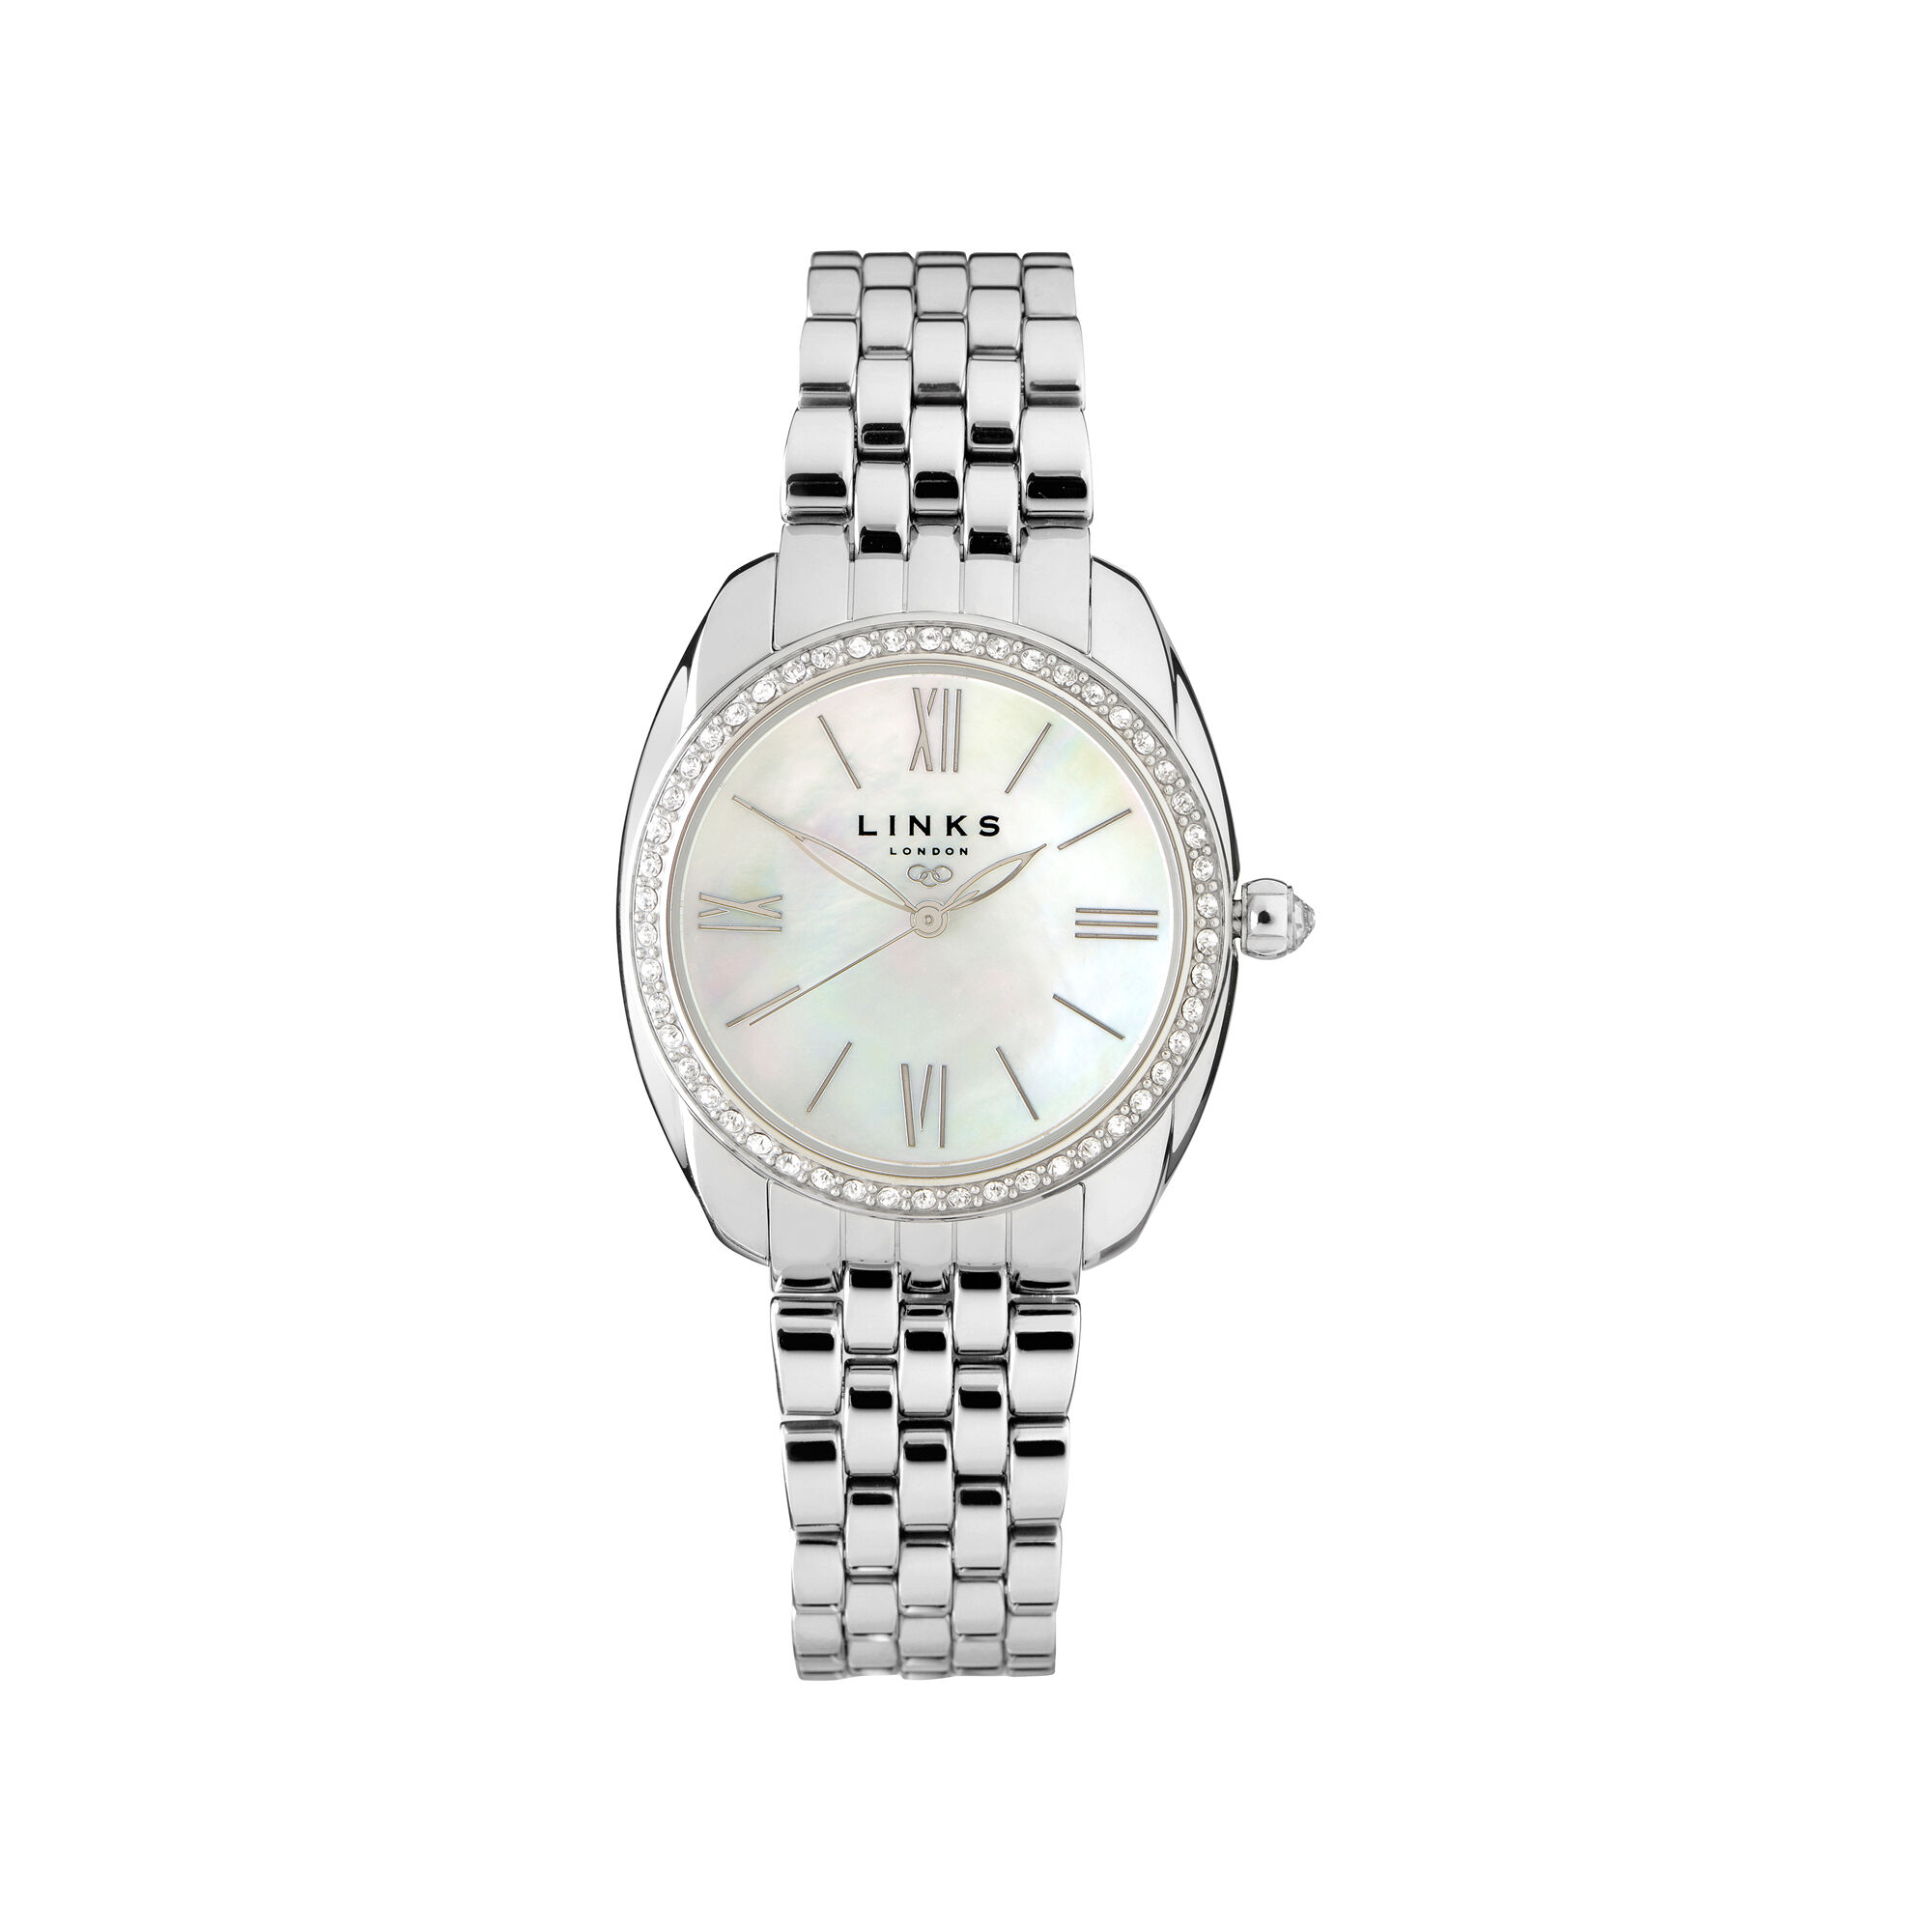 watch watches rotary bracelet birth home year silver solid ladies dsc product